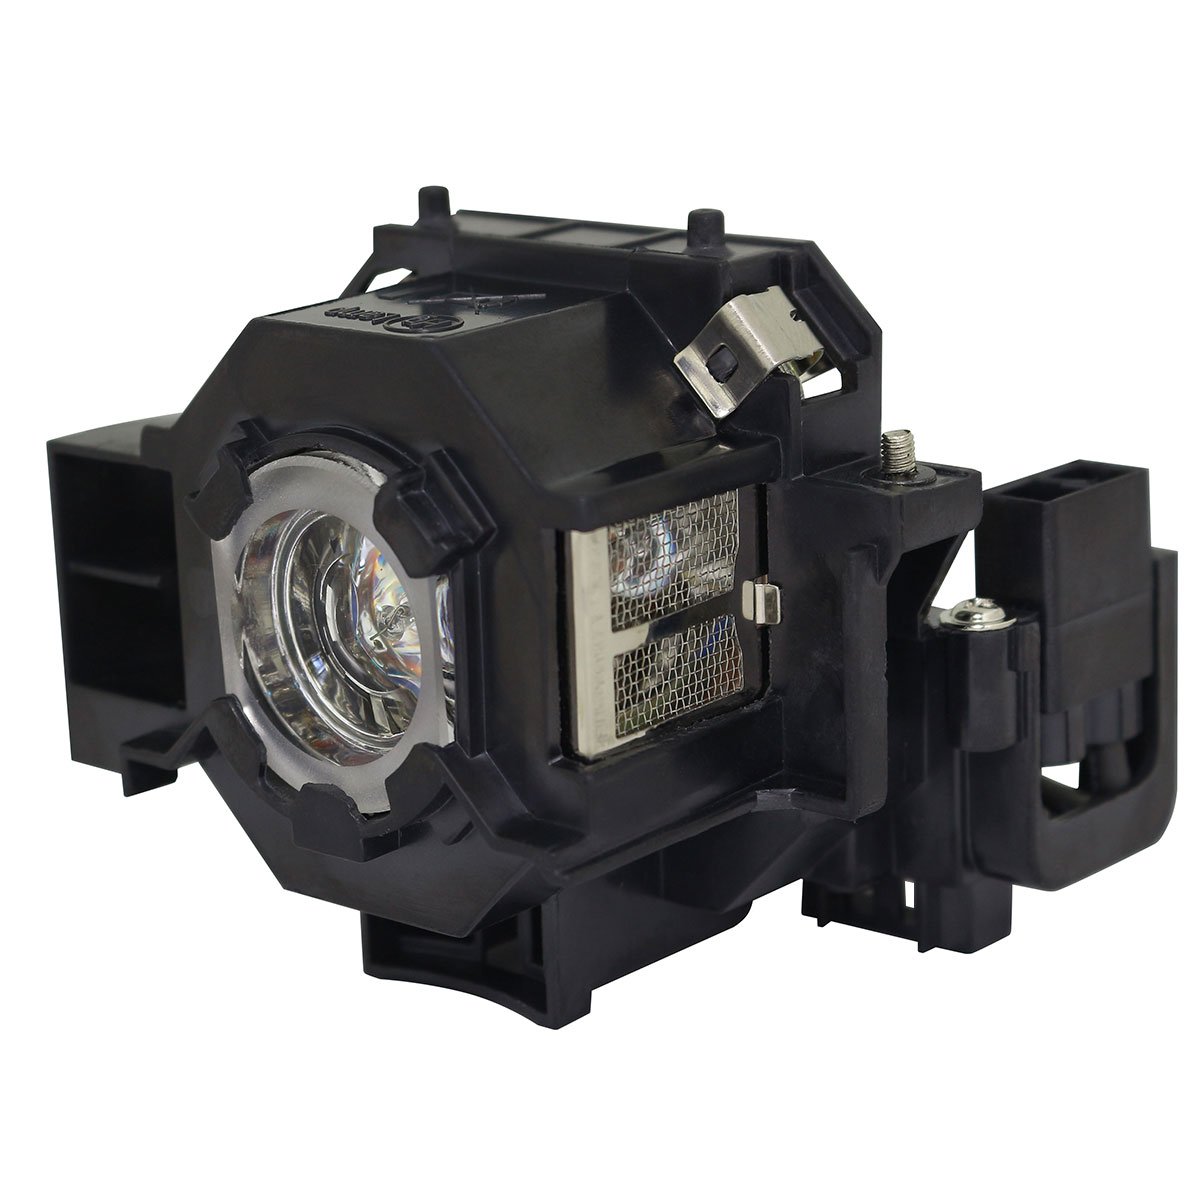 Lutema Platinum Bulb for Epson H330C Projector (Lamp Only) - image 5 of 5